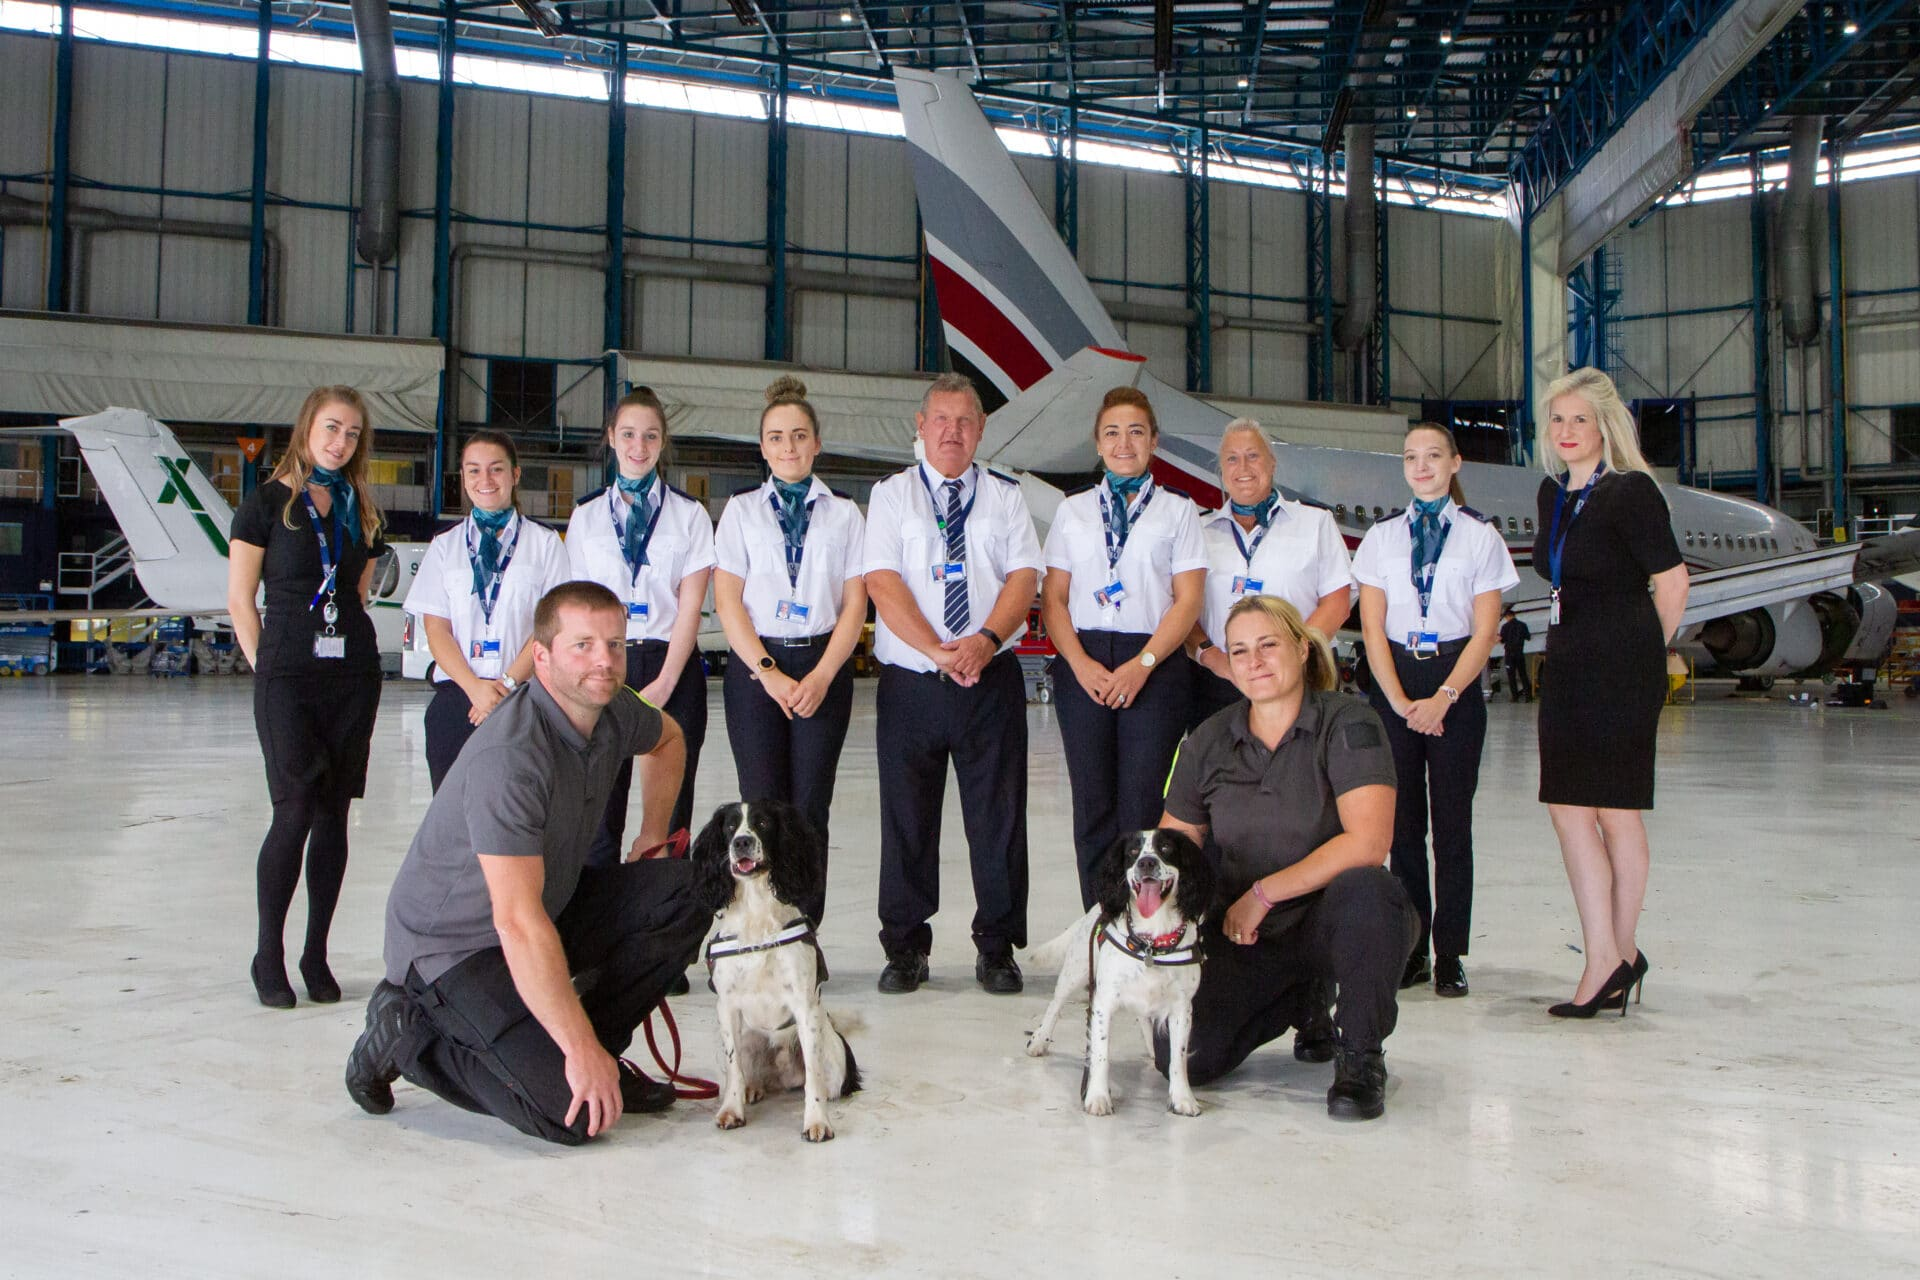 Concorde Airport Security Team